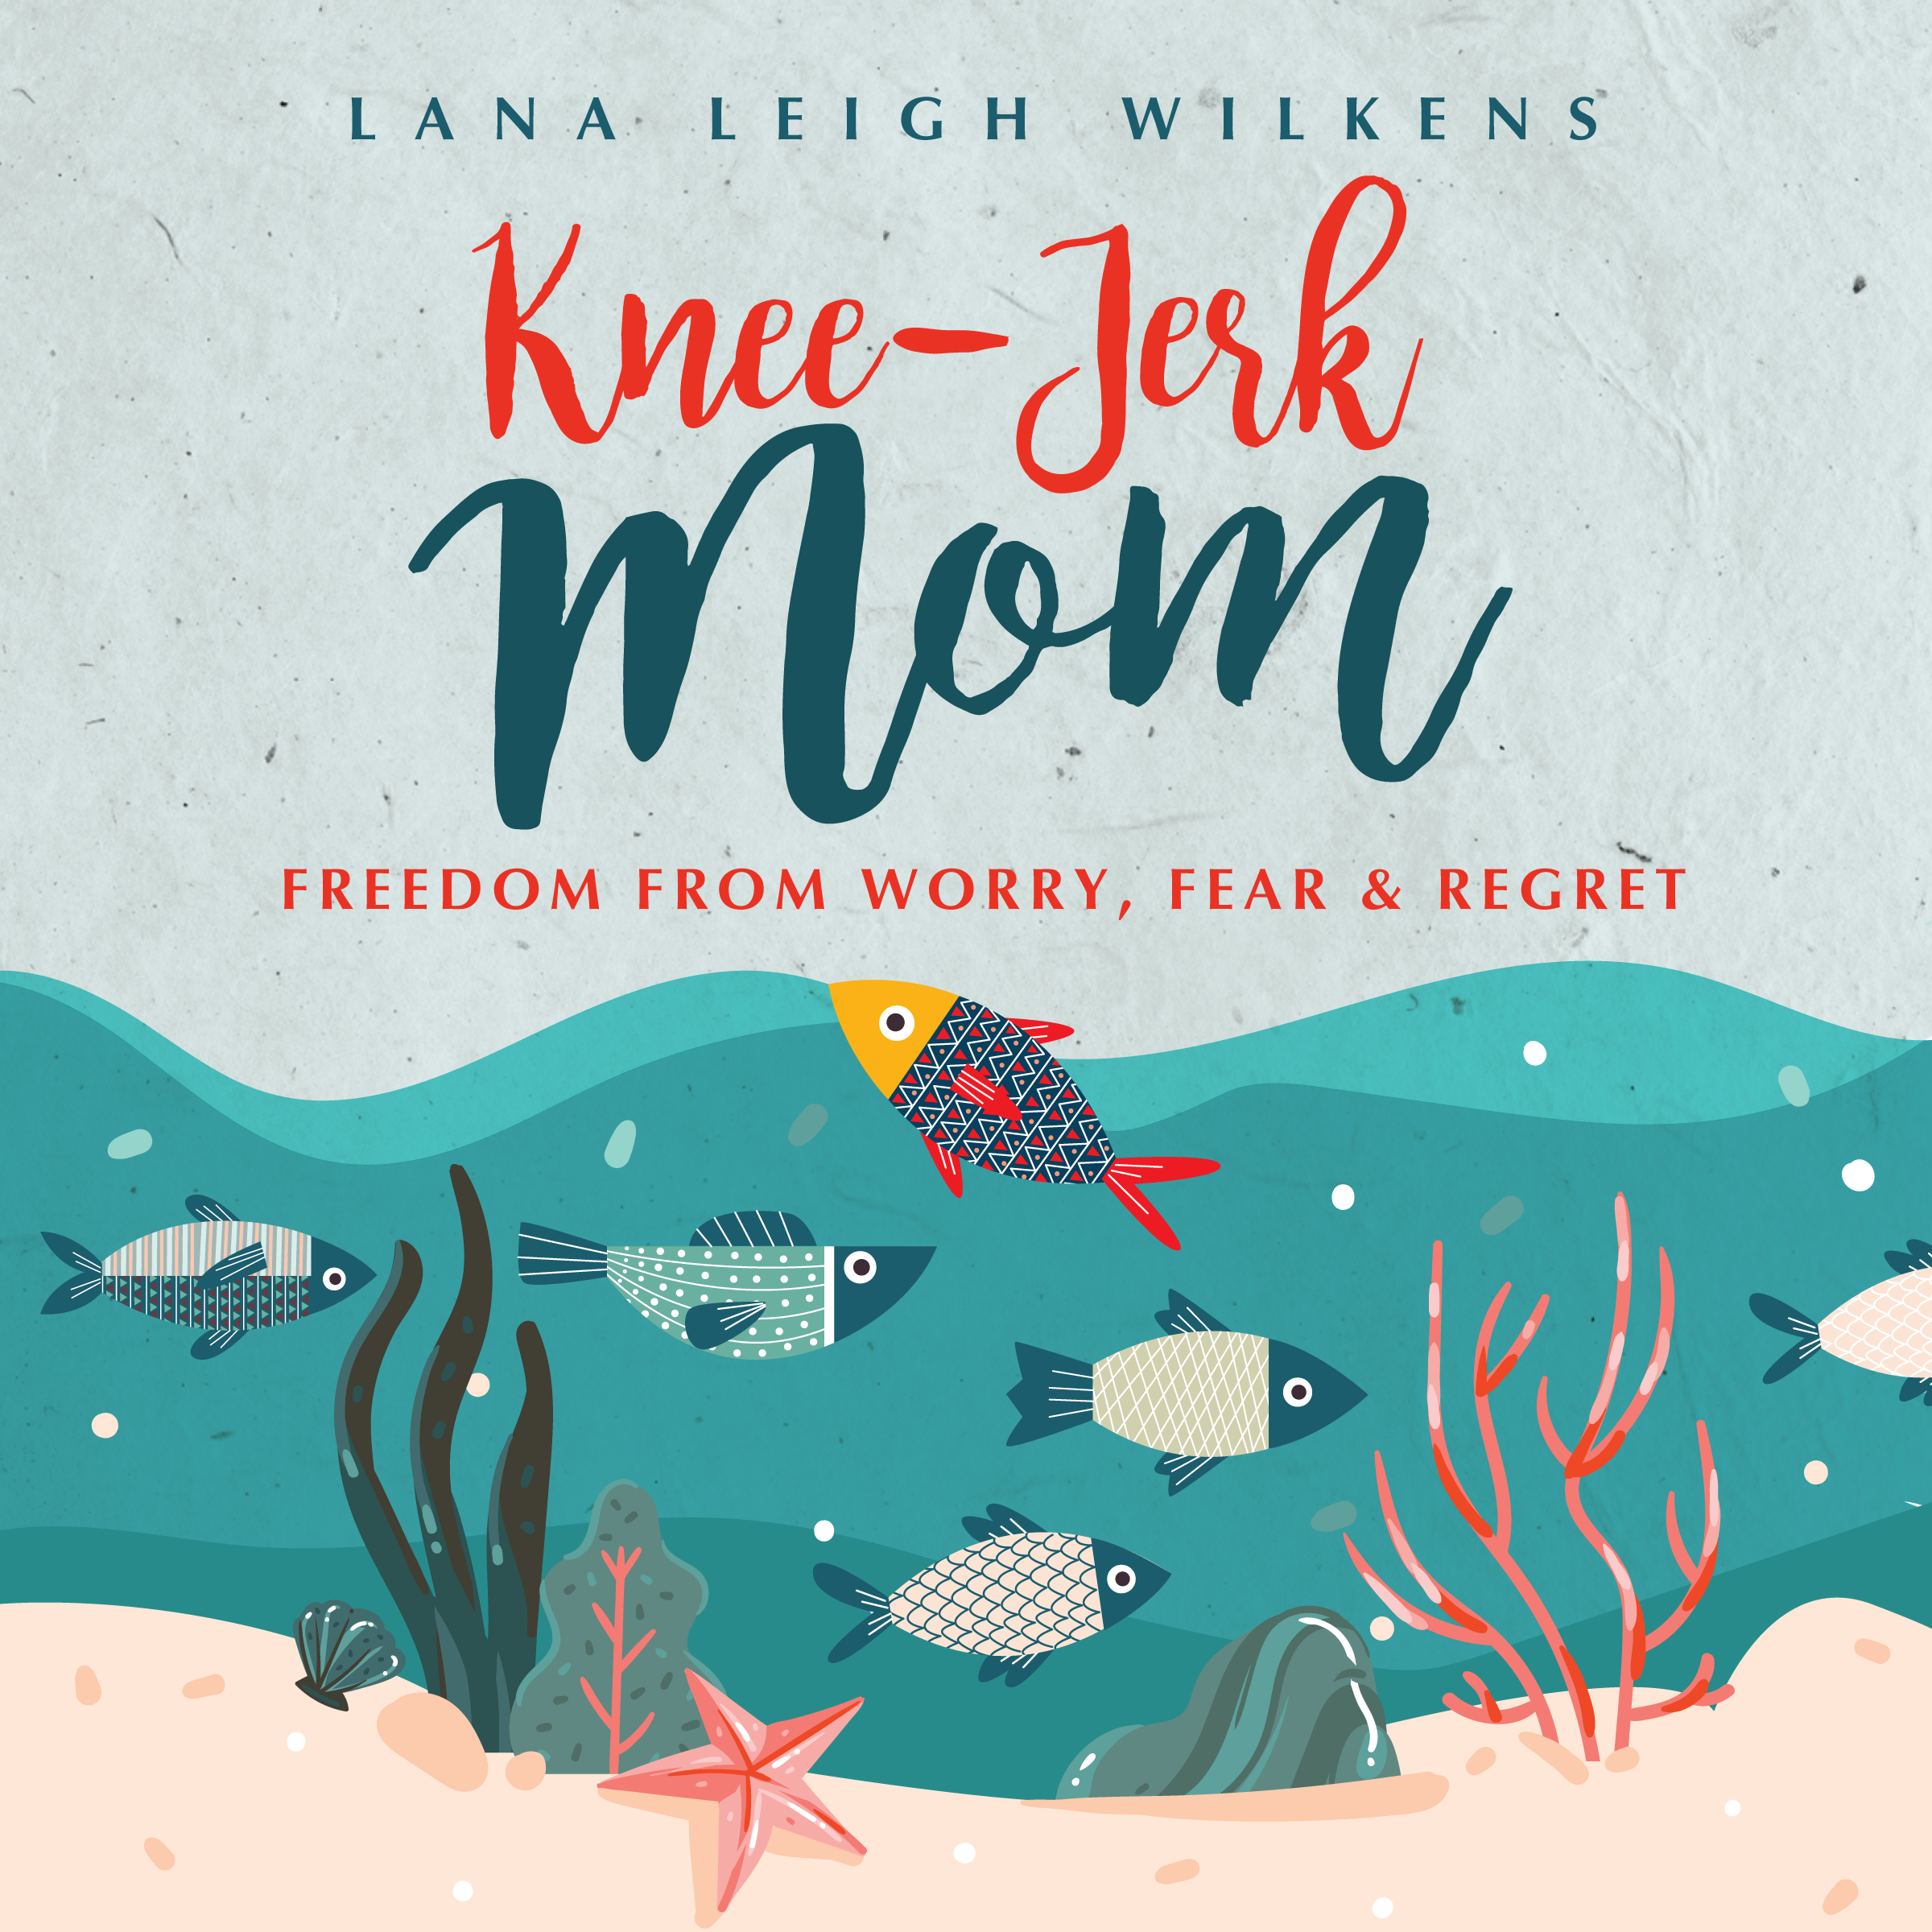 New Mommy Book Needs a Non-Mommy Look - Book Cover Design